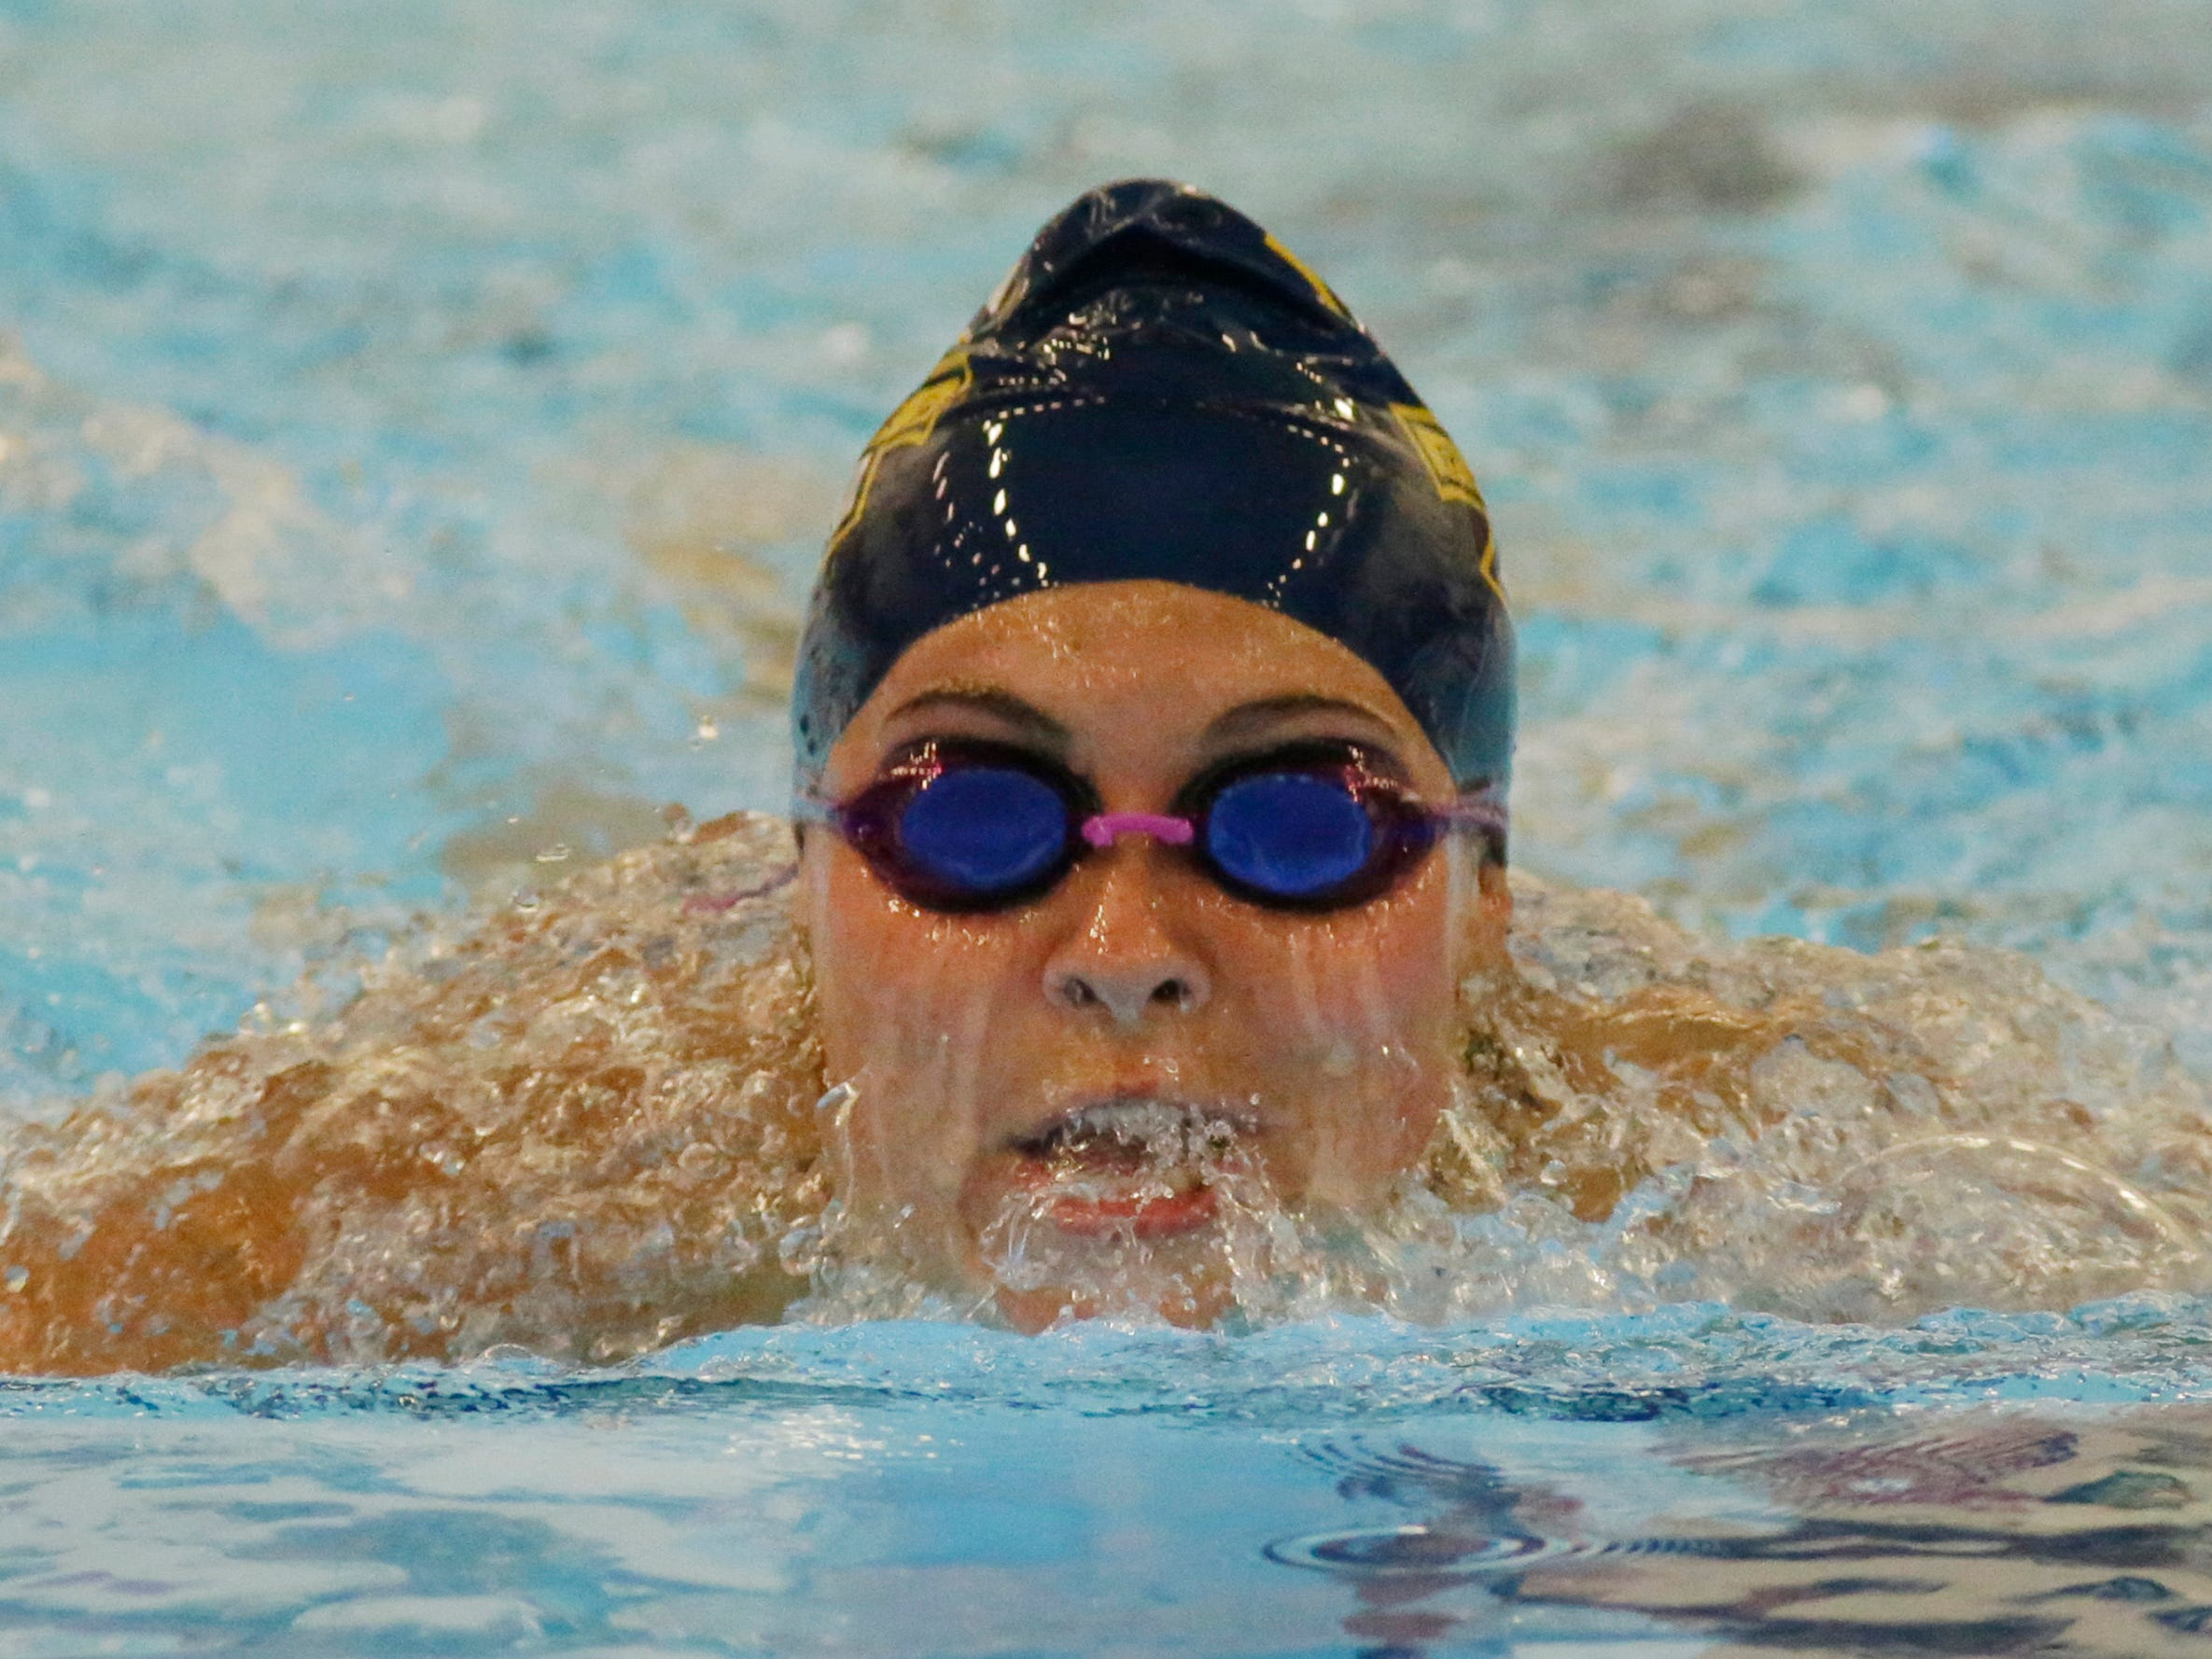 Sheboygan North's Erin Konter swims the 400 yard breaststroke butterfly relay at Sheboygan South, Tuesday, August 28, 2018, in Sheboygan, Wis.